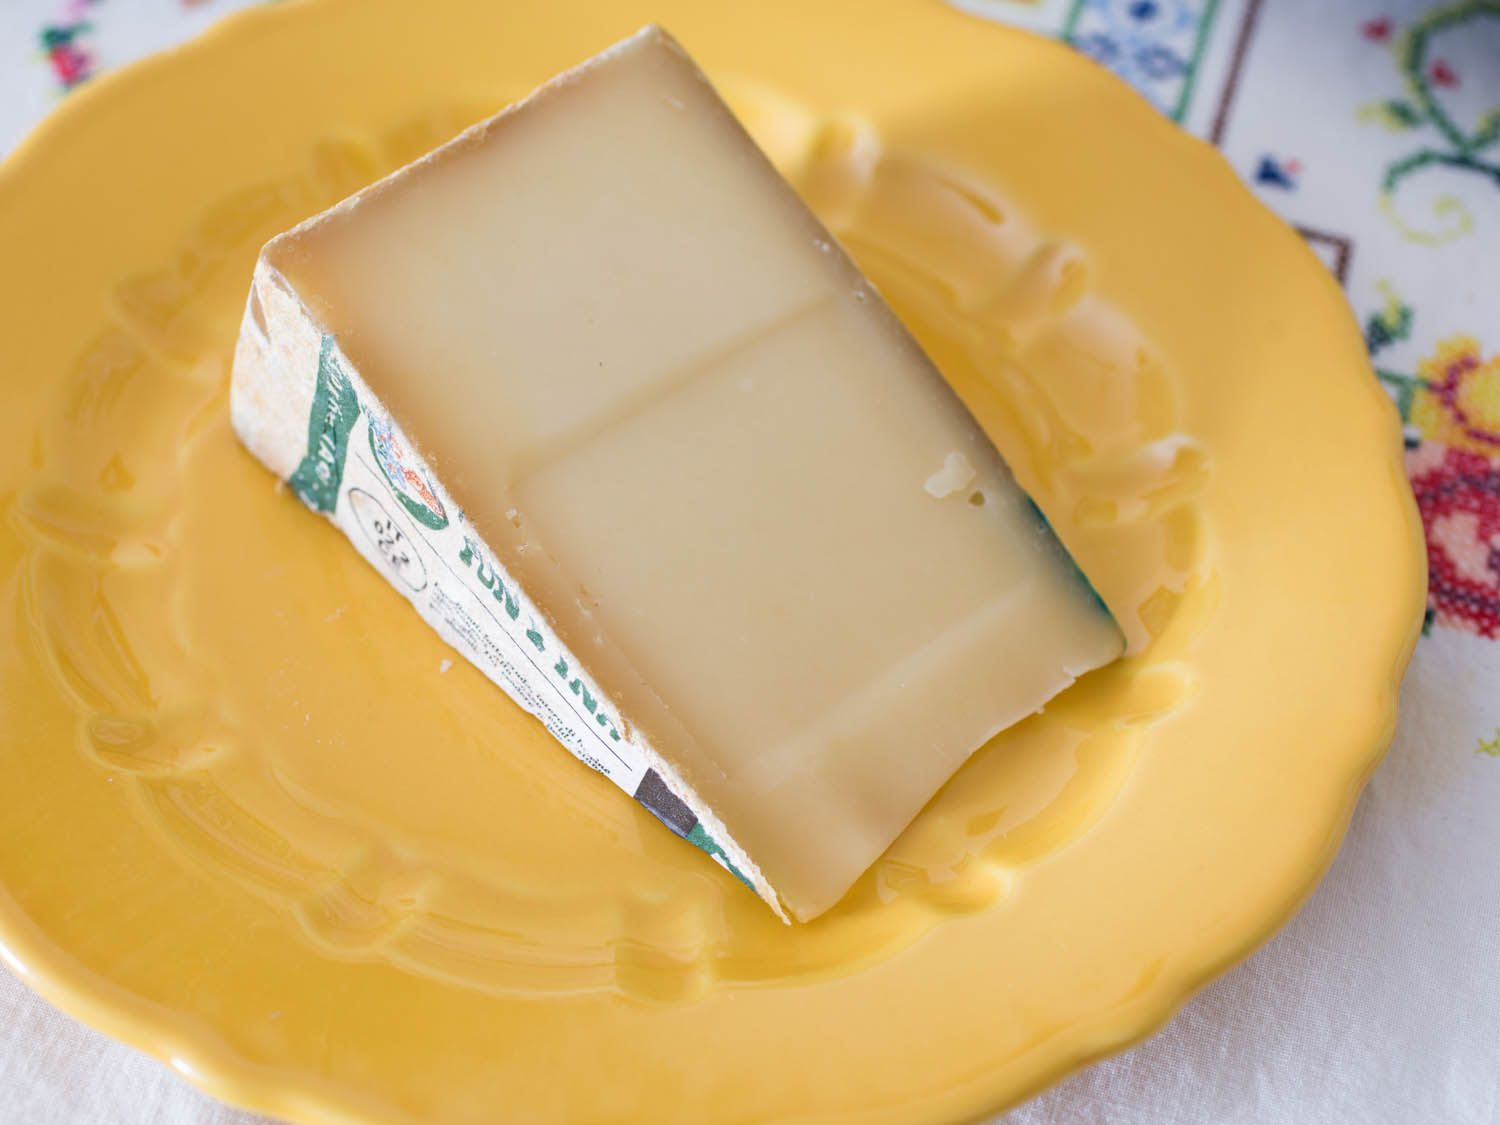 A wedge of fontina val d'aosta cheese on a yellow plate.